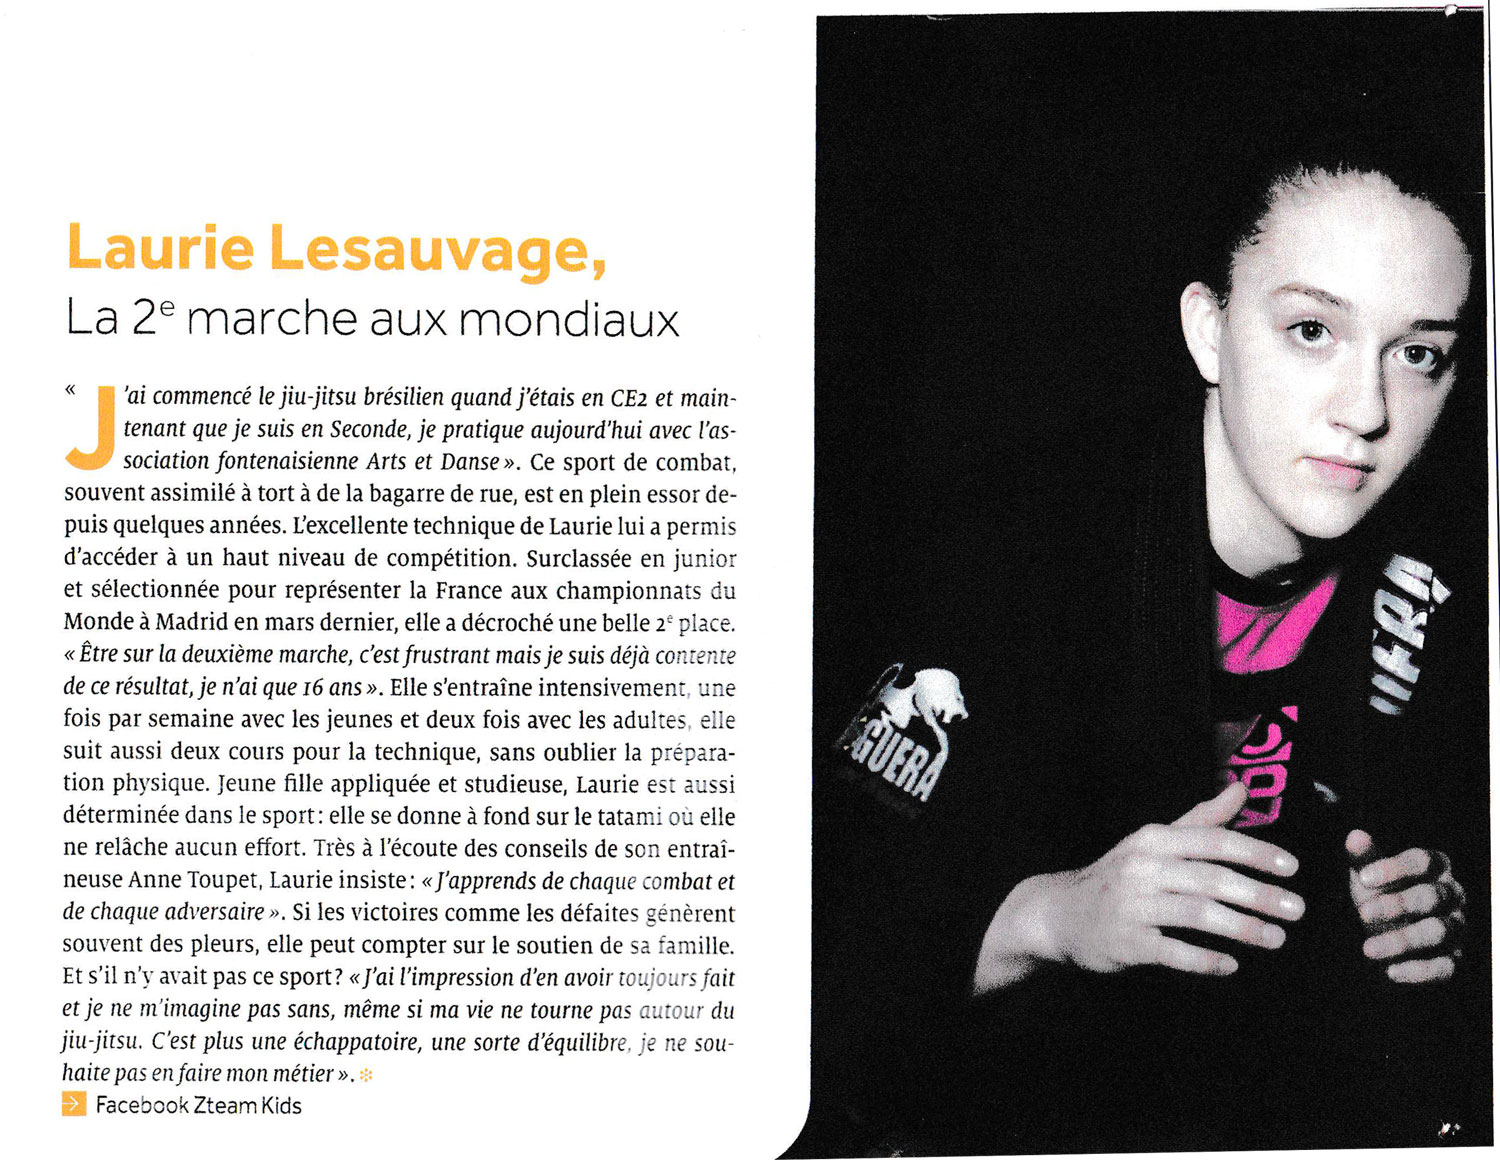 article_Laurie_Lesauvage